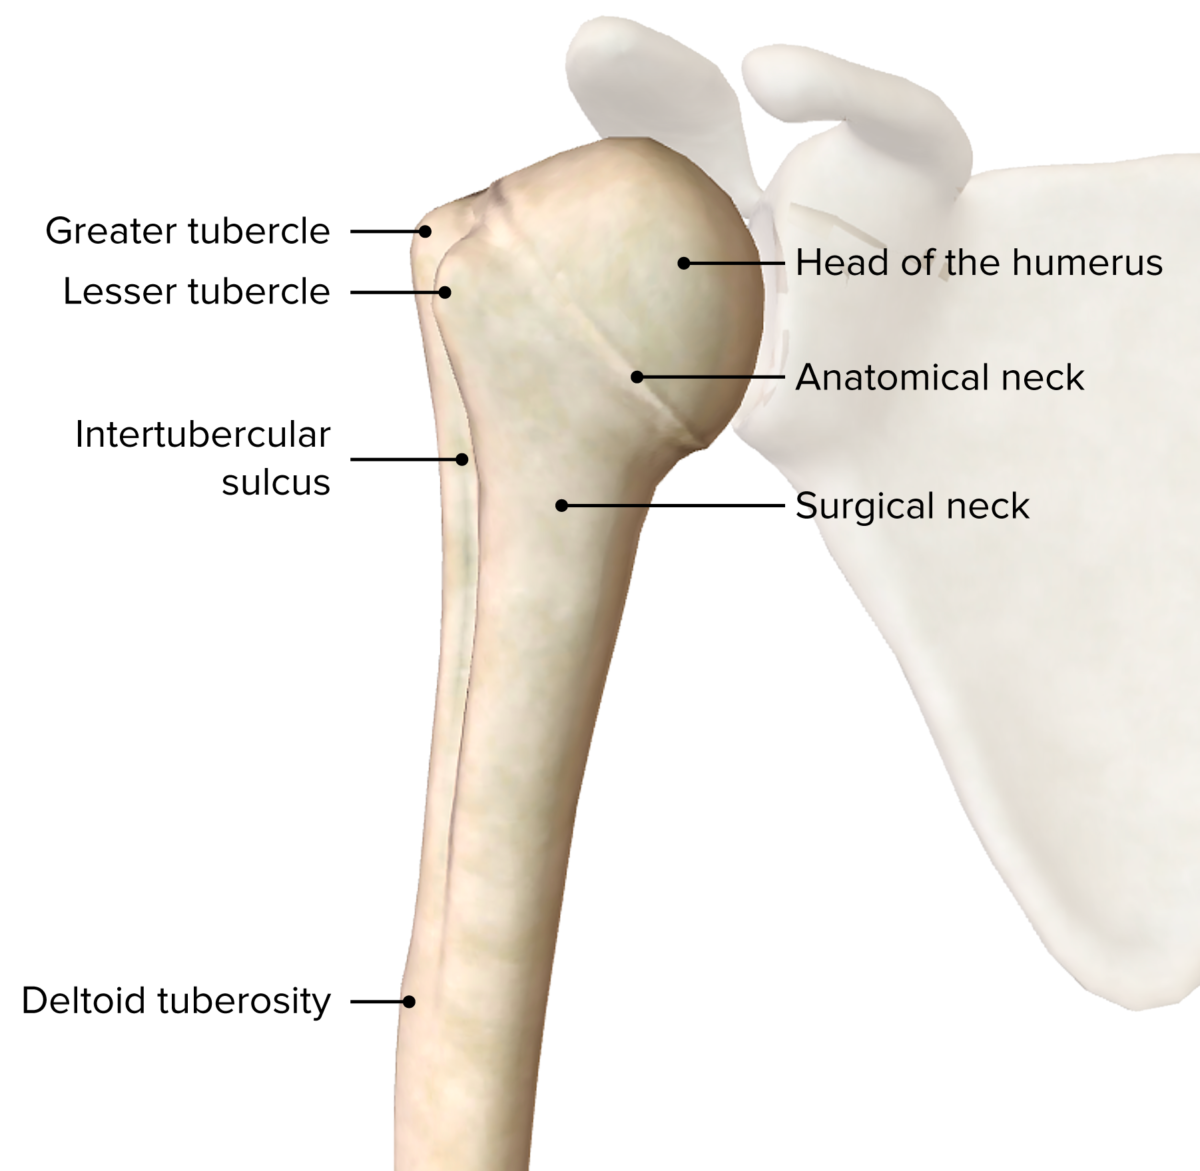 Proximal end of the humerus